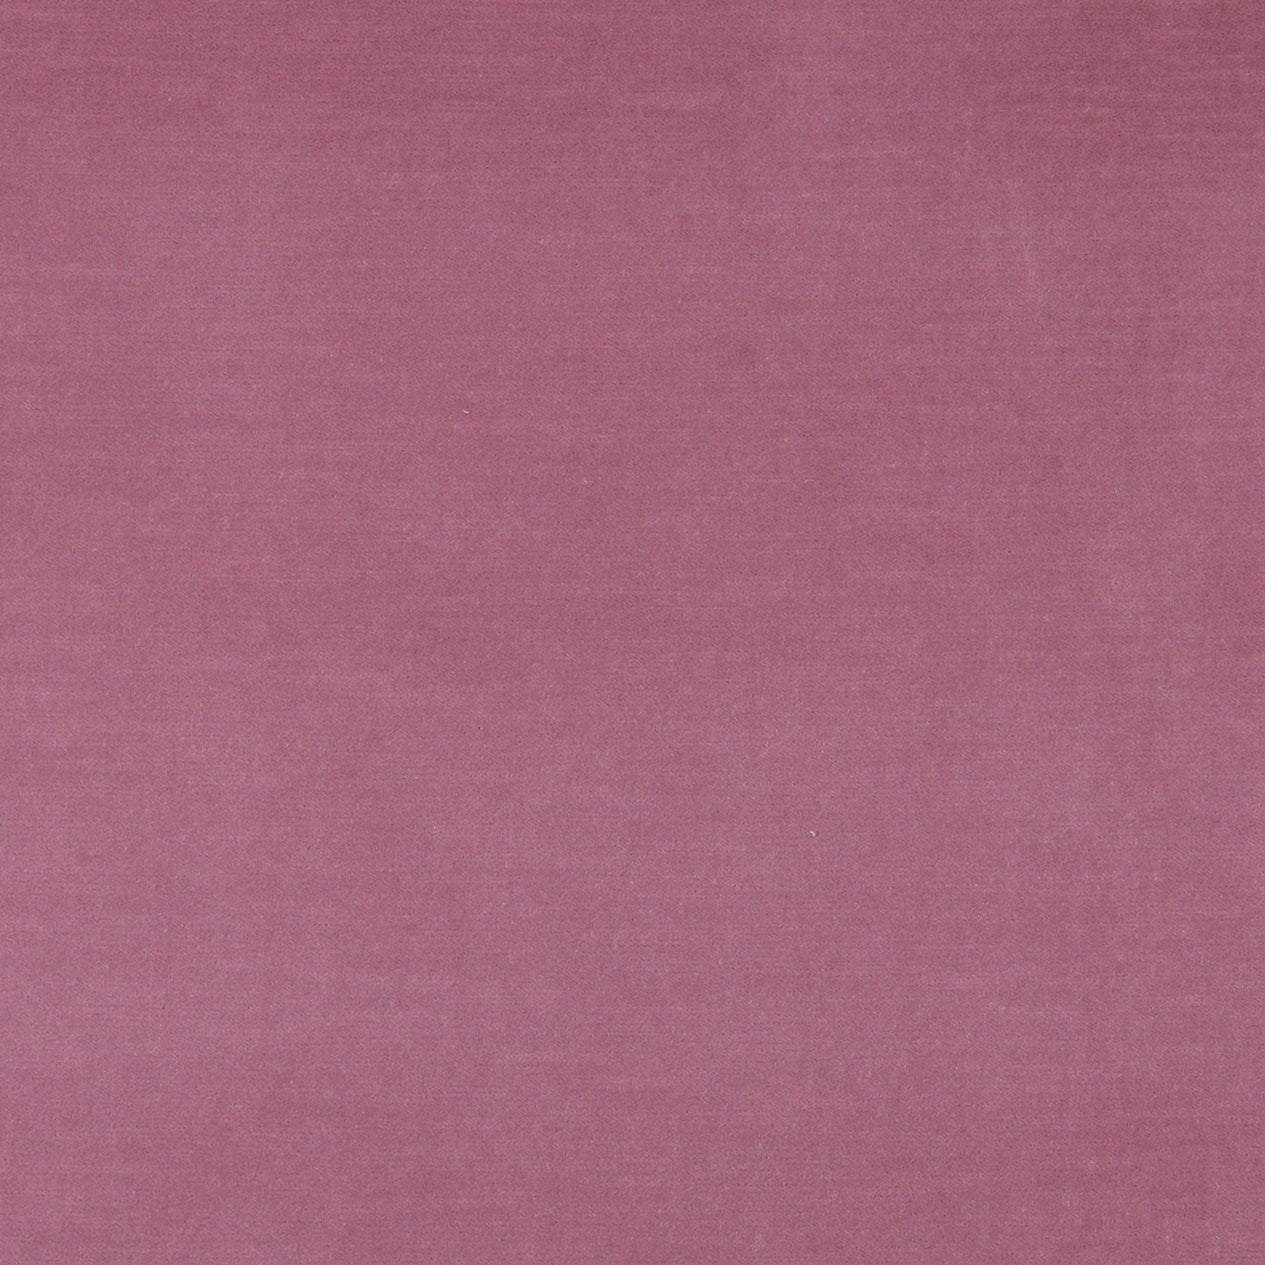 Shop A0001b Pink Authentic Durable Cotton Velvet Upholstery Fabric